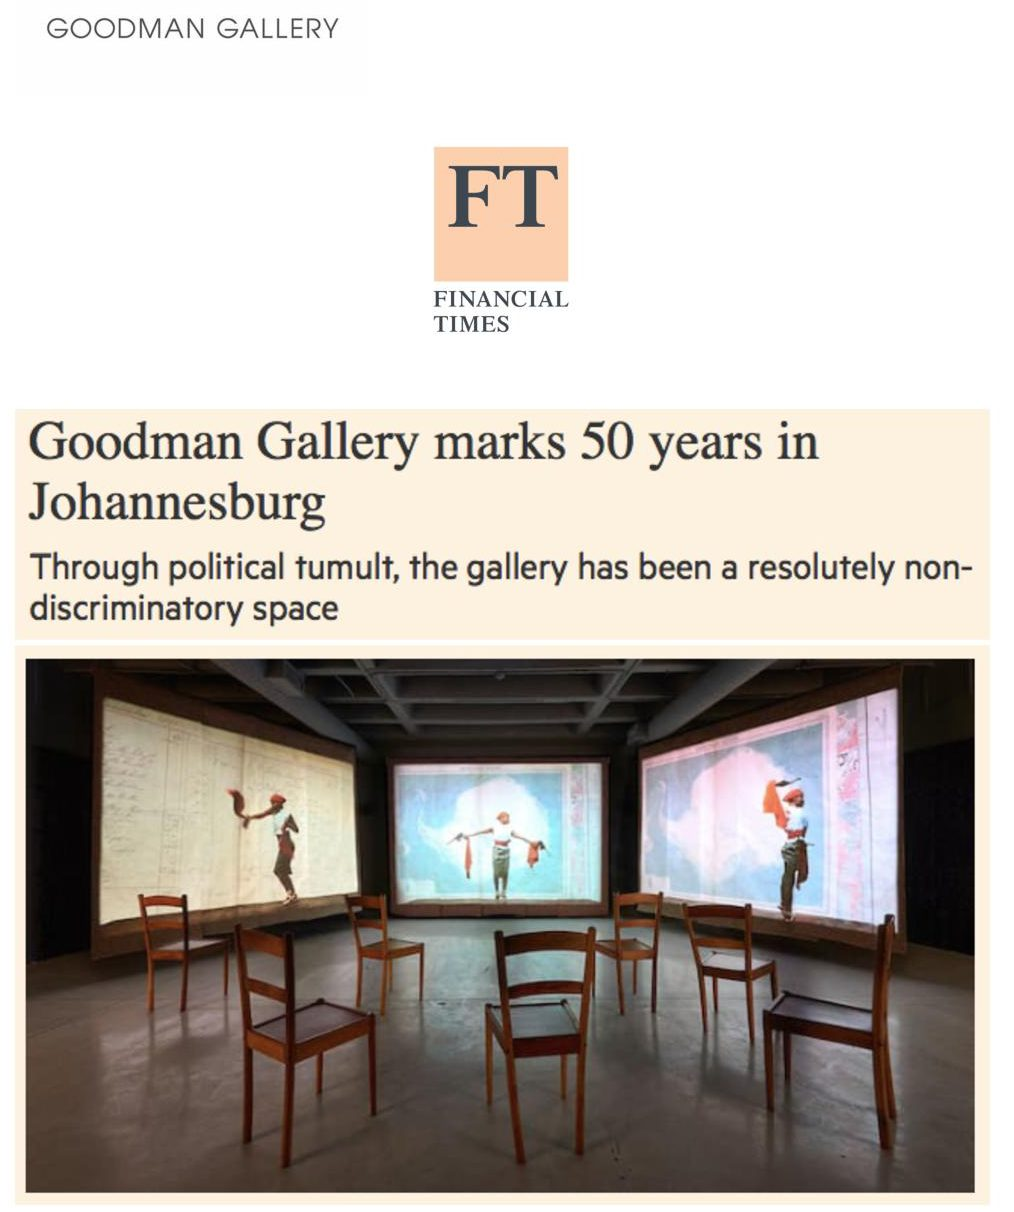 20161111_financialtimes_goodman-page-001